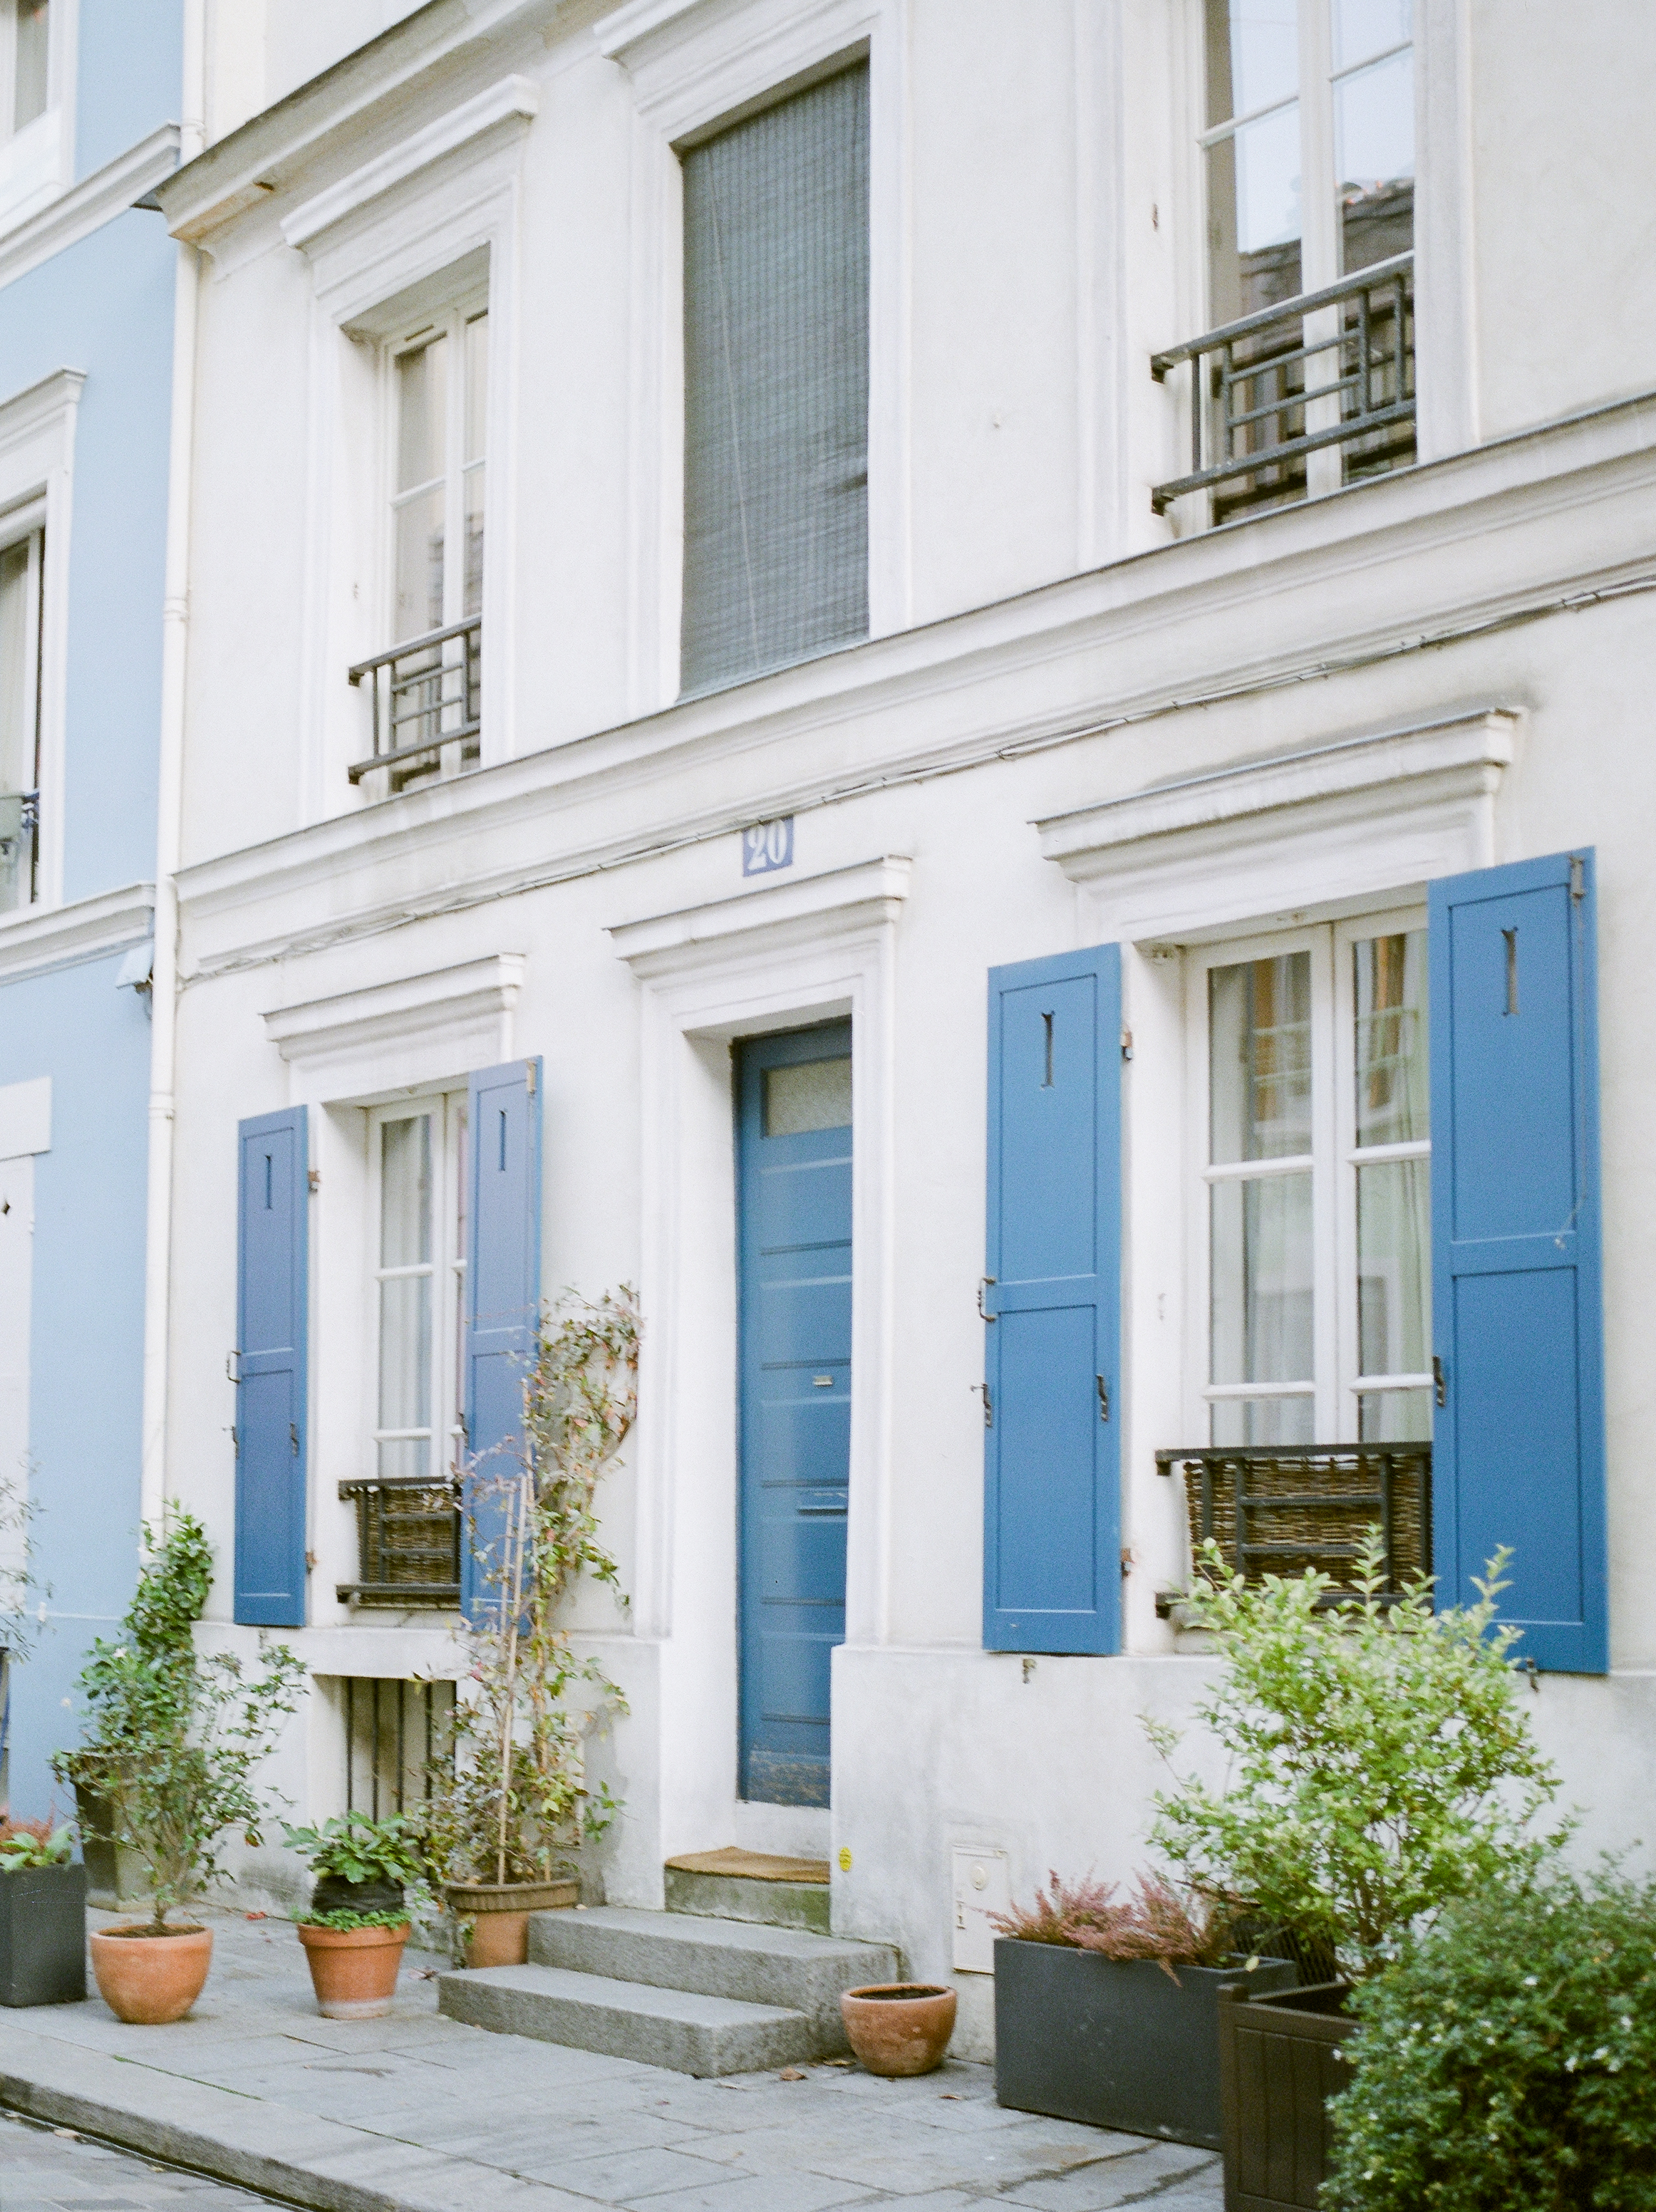 famous-colorful-street-in-paris-france.jpg